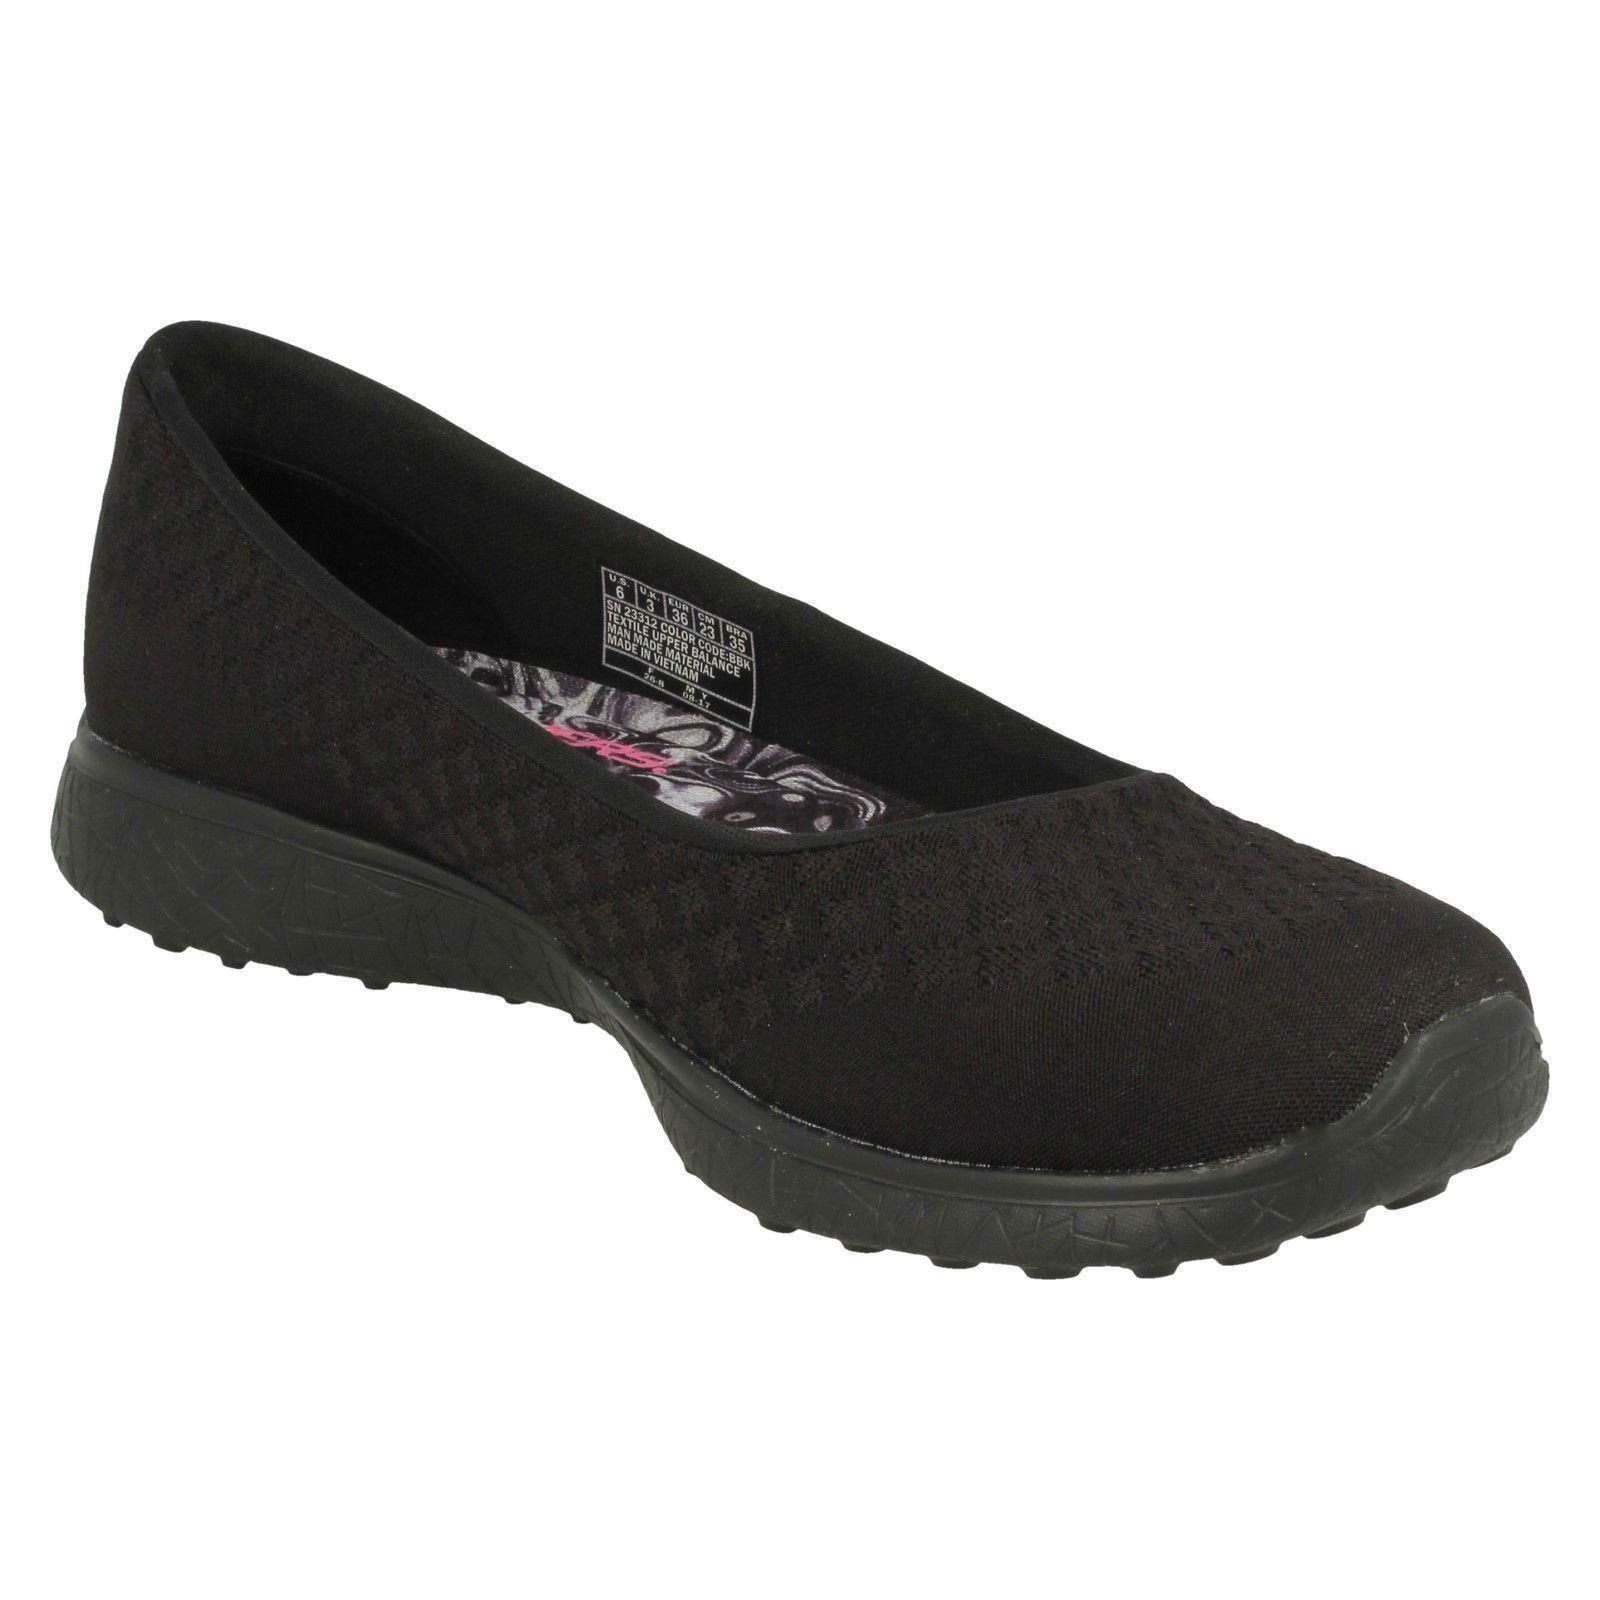 Damenschuhe Memory Skechers Memory Damenschuhe Foam Schuhes - One Up 23312 e8dac8